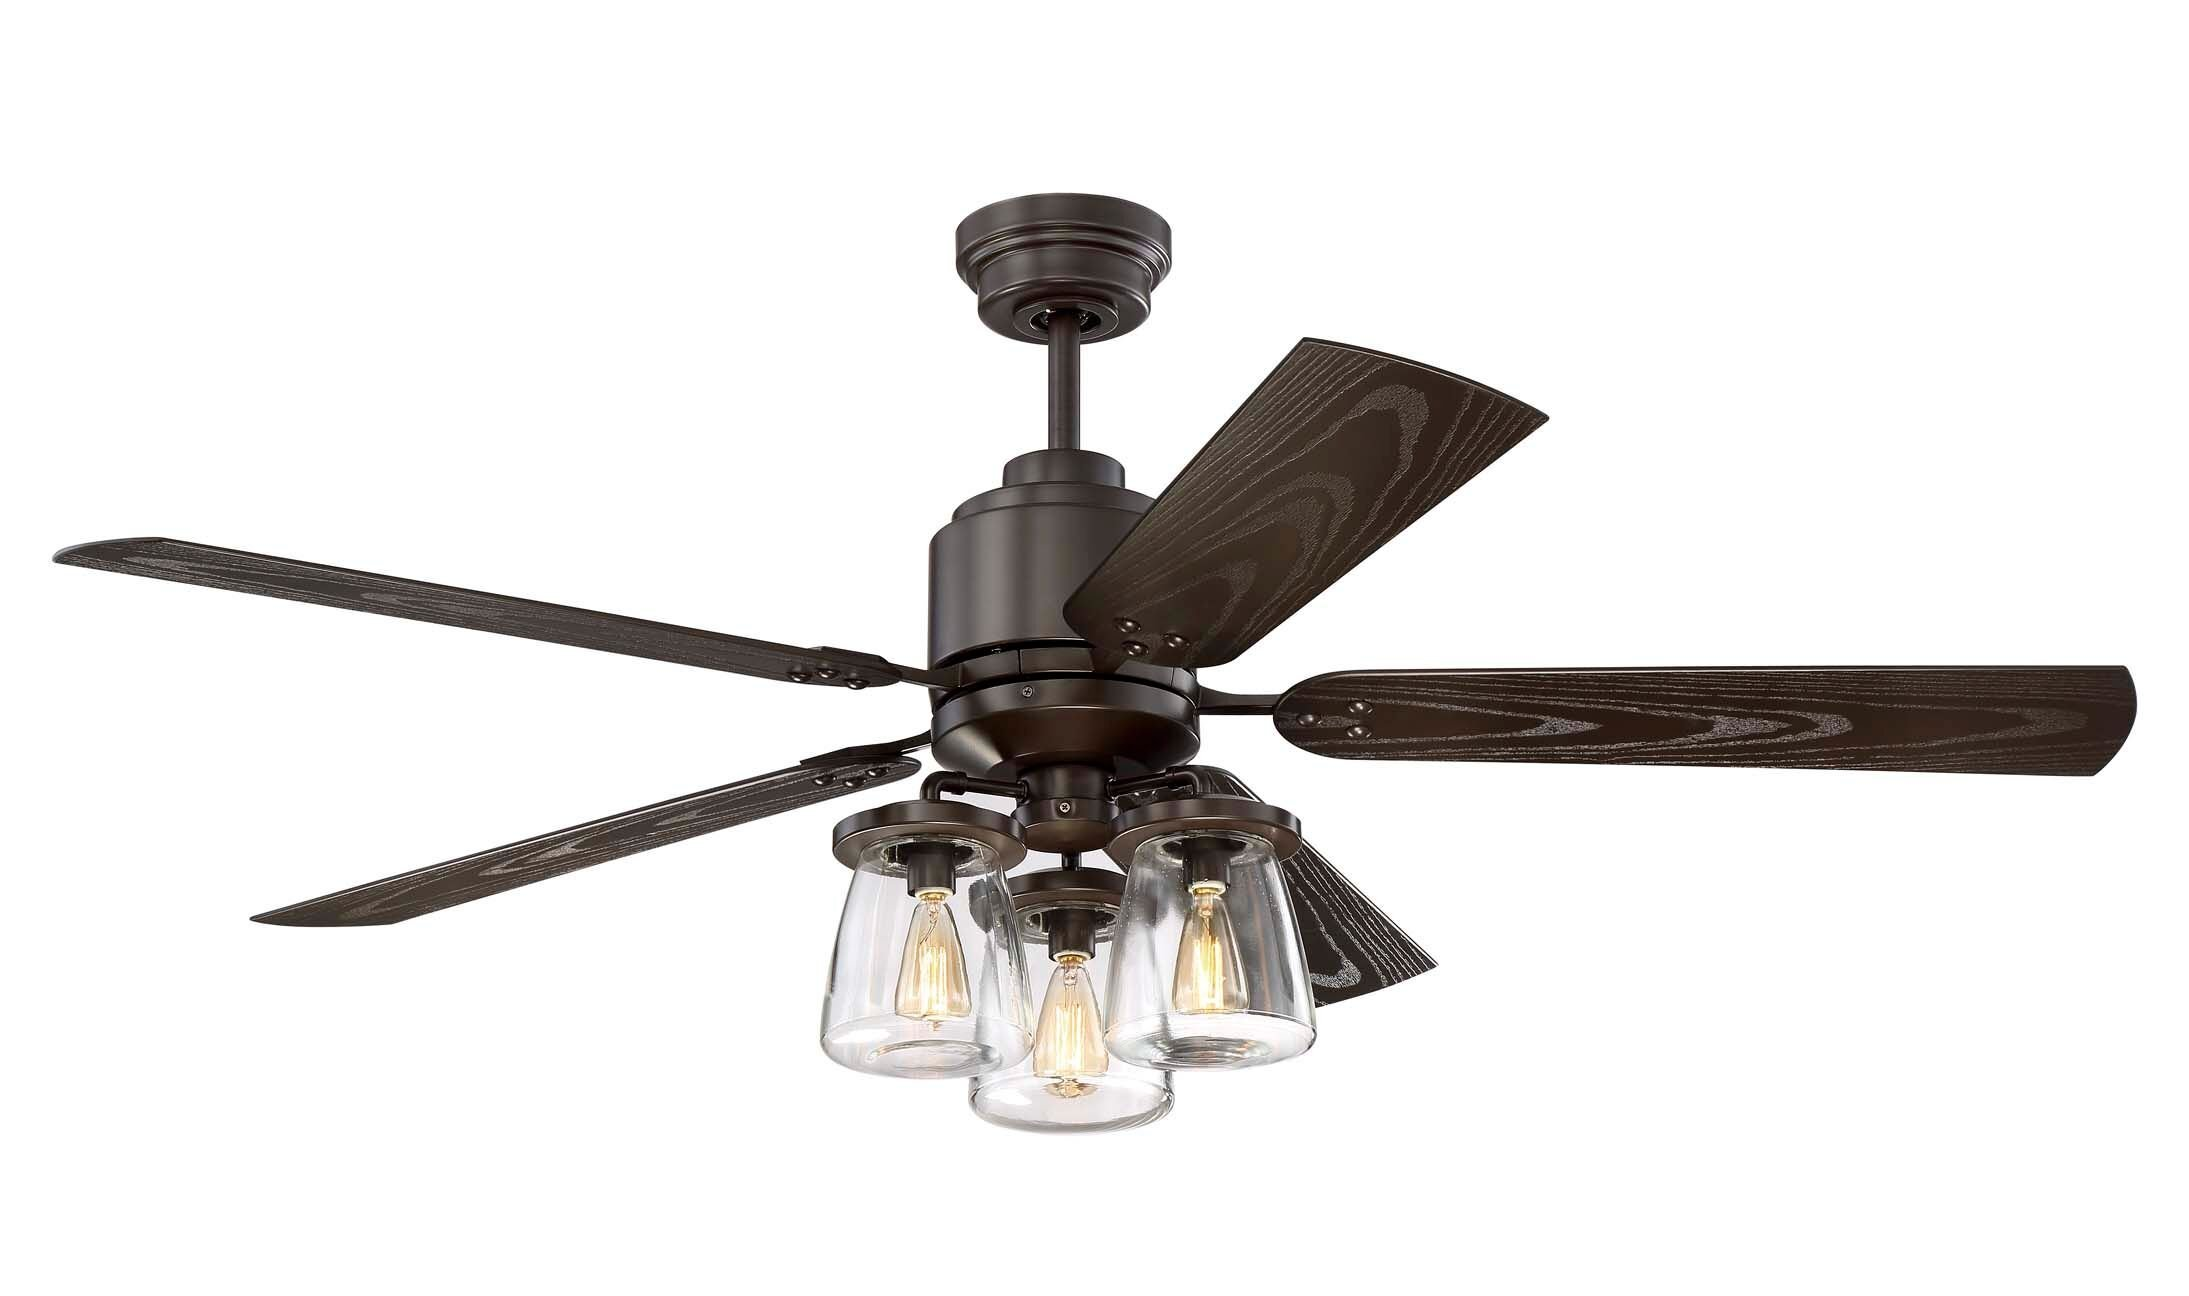 Litex COS52OSB5CR Andrus 52'' Indoor/Outdoor Ceiling Fan with Remote Control, Five Dark Bronze Blades and Three Light Kit with Clear Glass by Litex